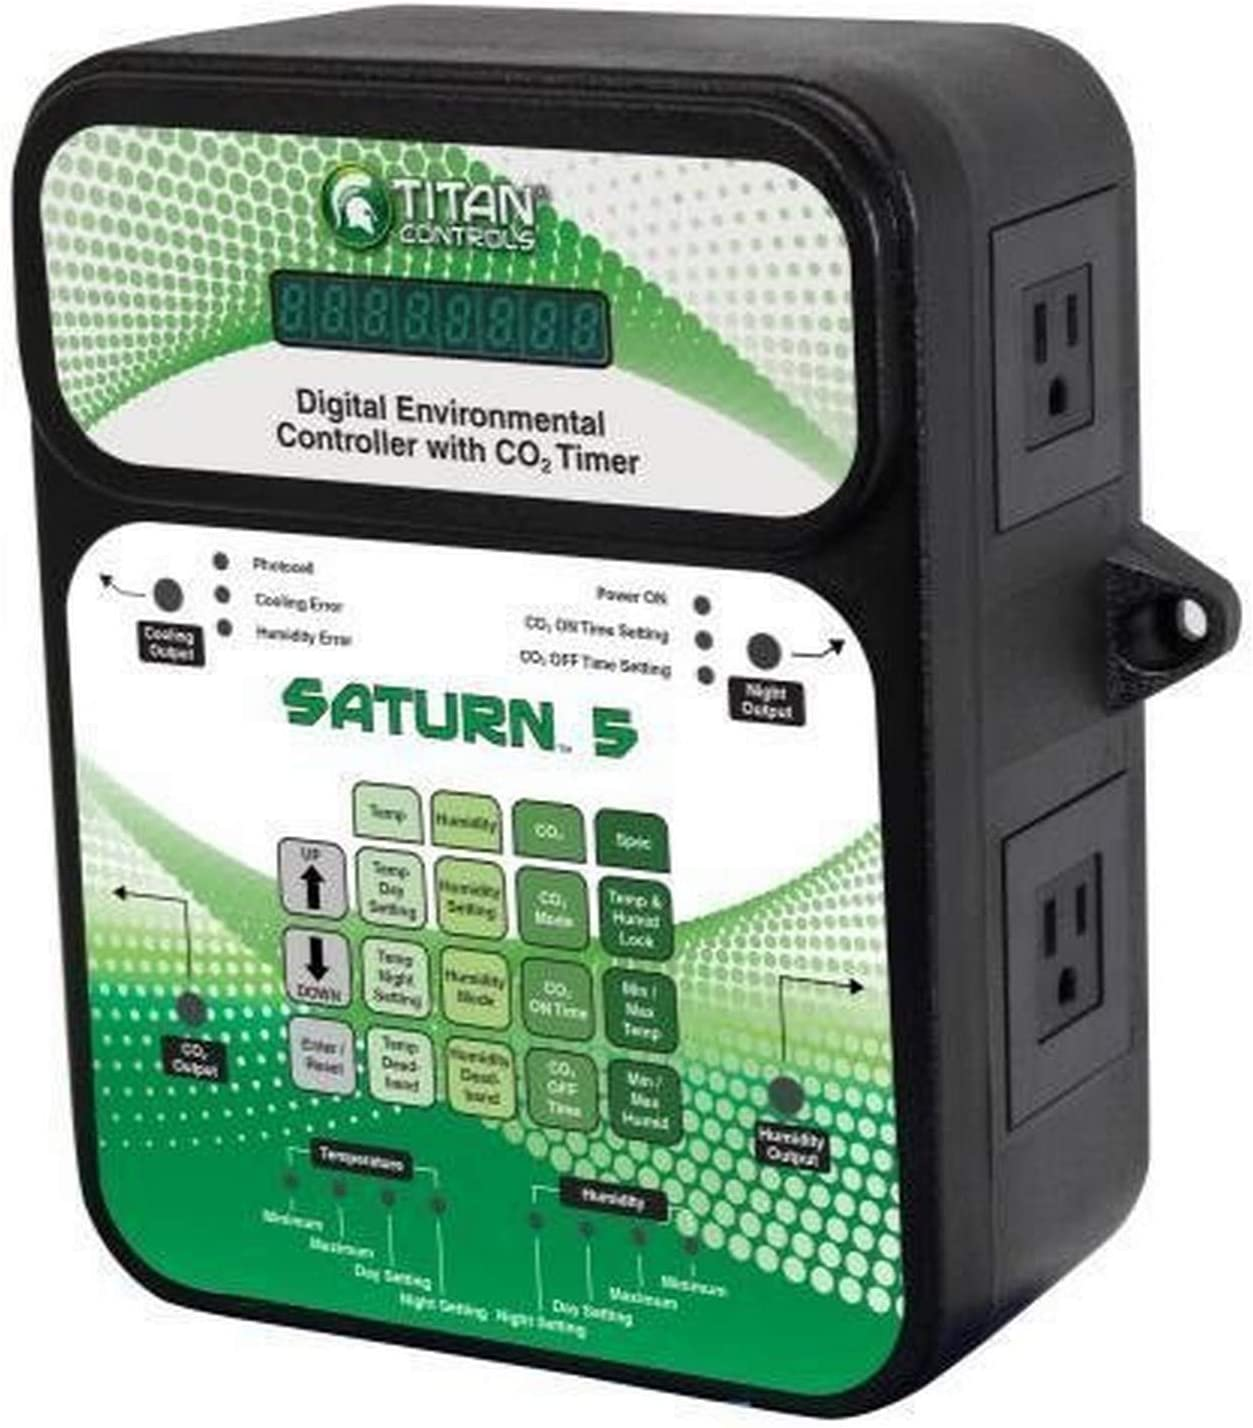 Titan Controls Classic Series Saturn 5 Digital Environmental Controller w/ CO₂ Timer